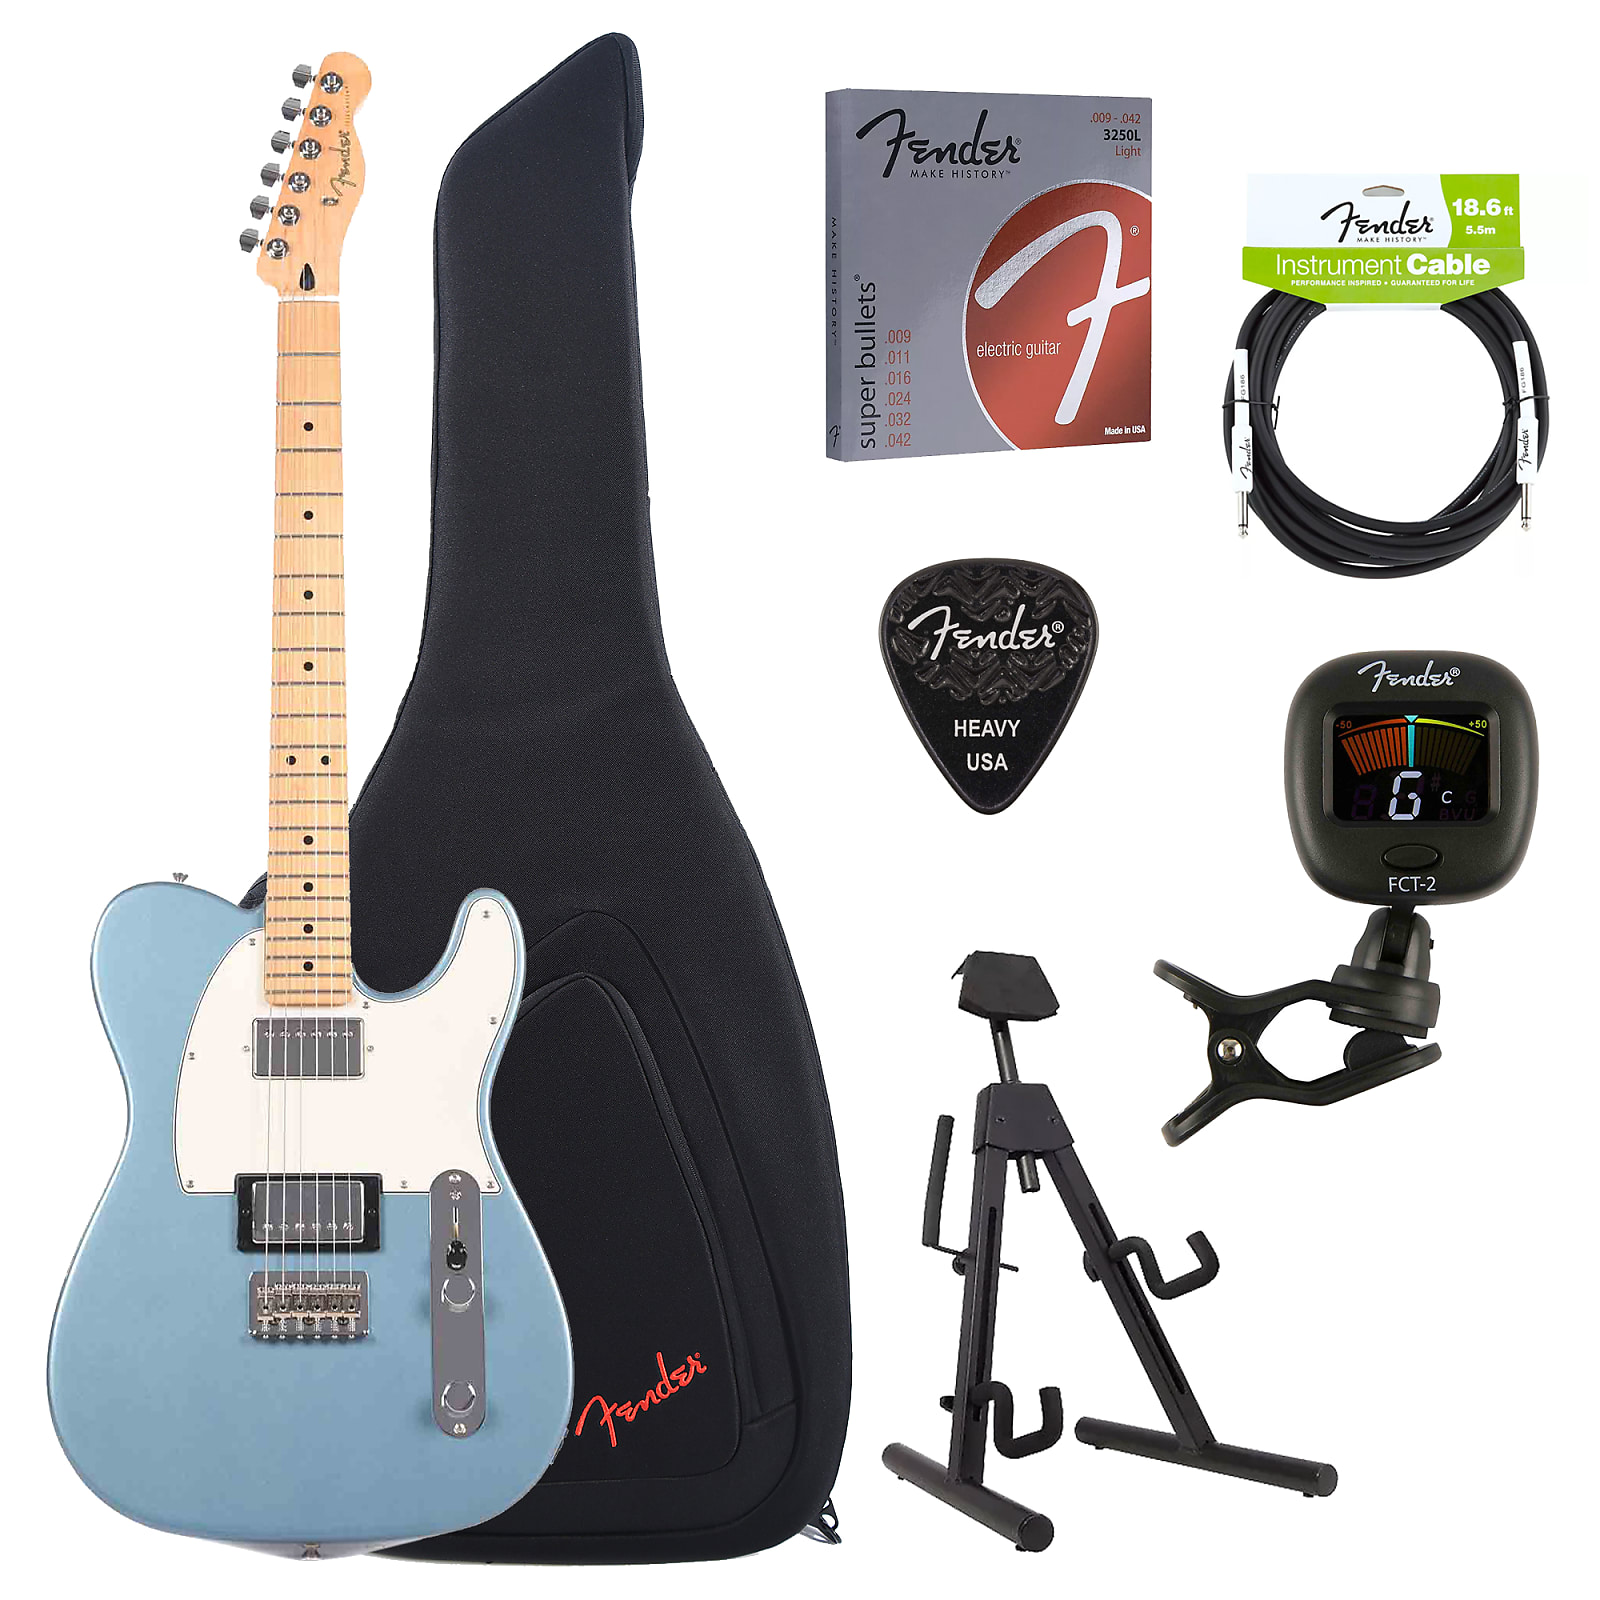 Fender Telecaster Hh >> Fender Player Telecaster Hh Tidepool Bundle W Fender Gig Bag Stand Cable Tuner Picks And Strings